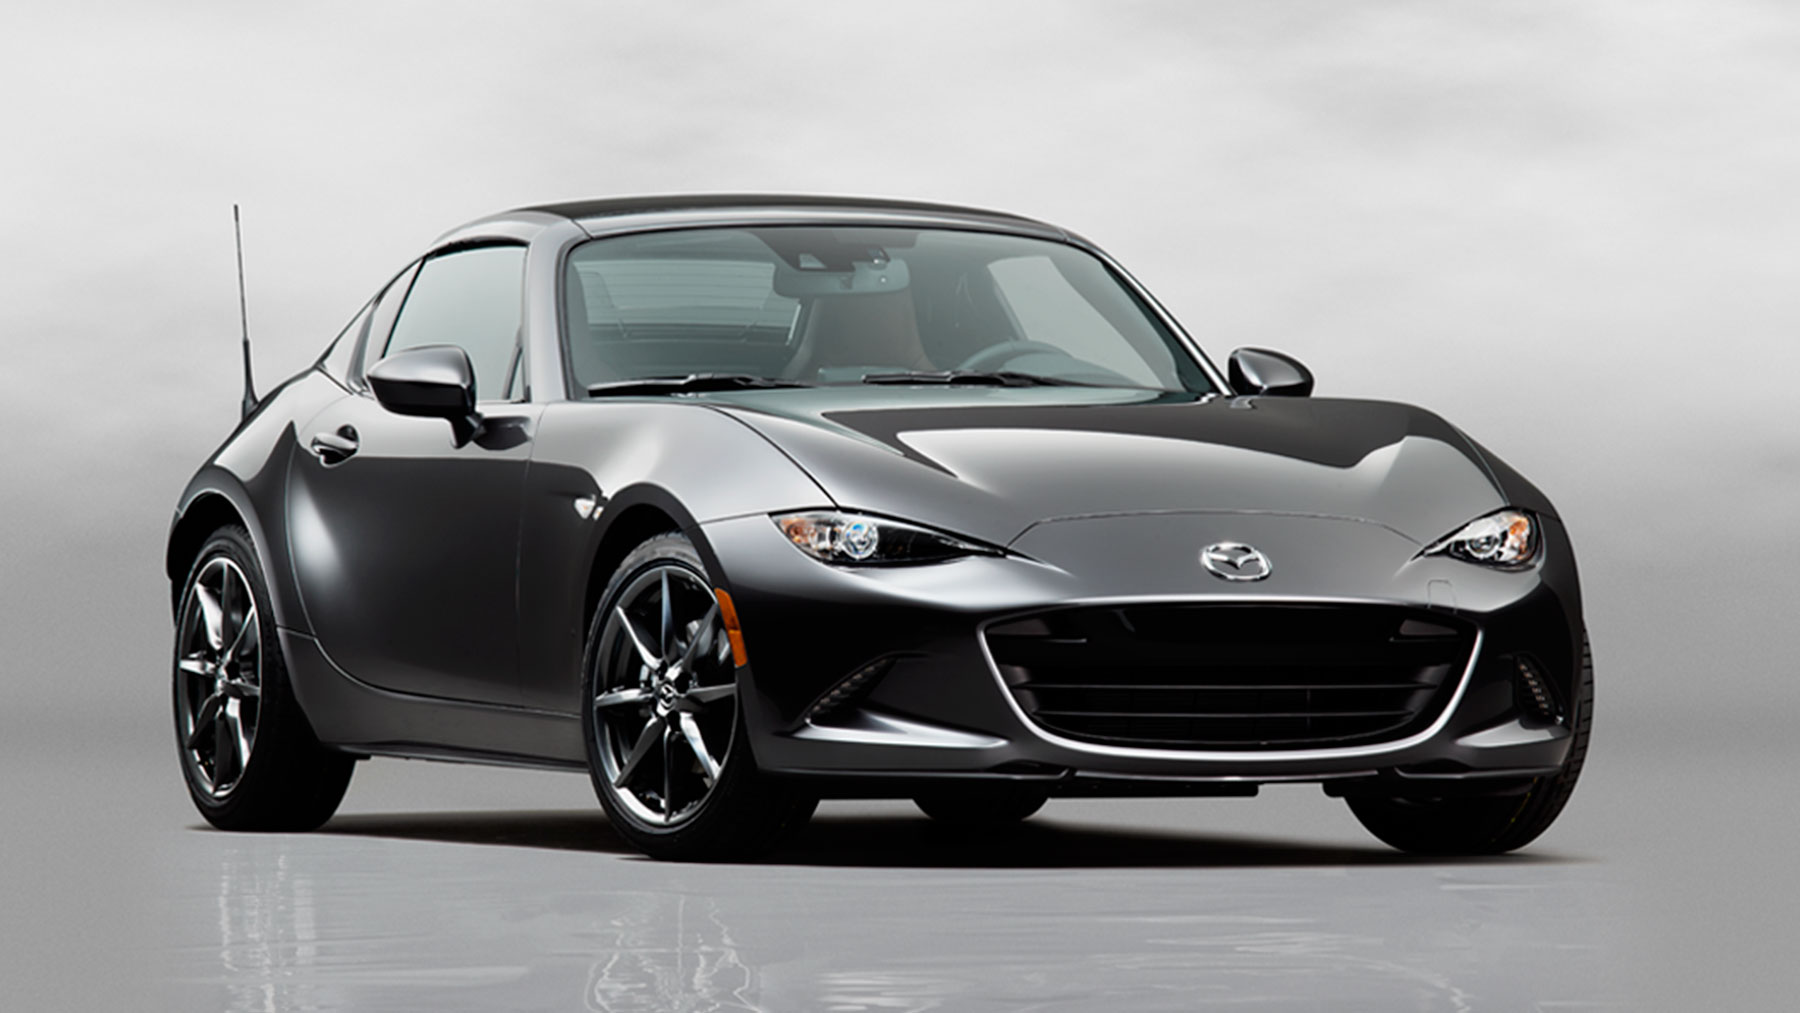 Image result for 2017 mazda miata no copyright